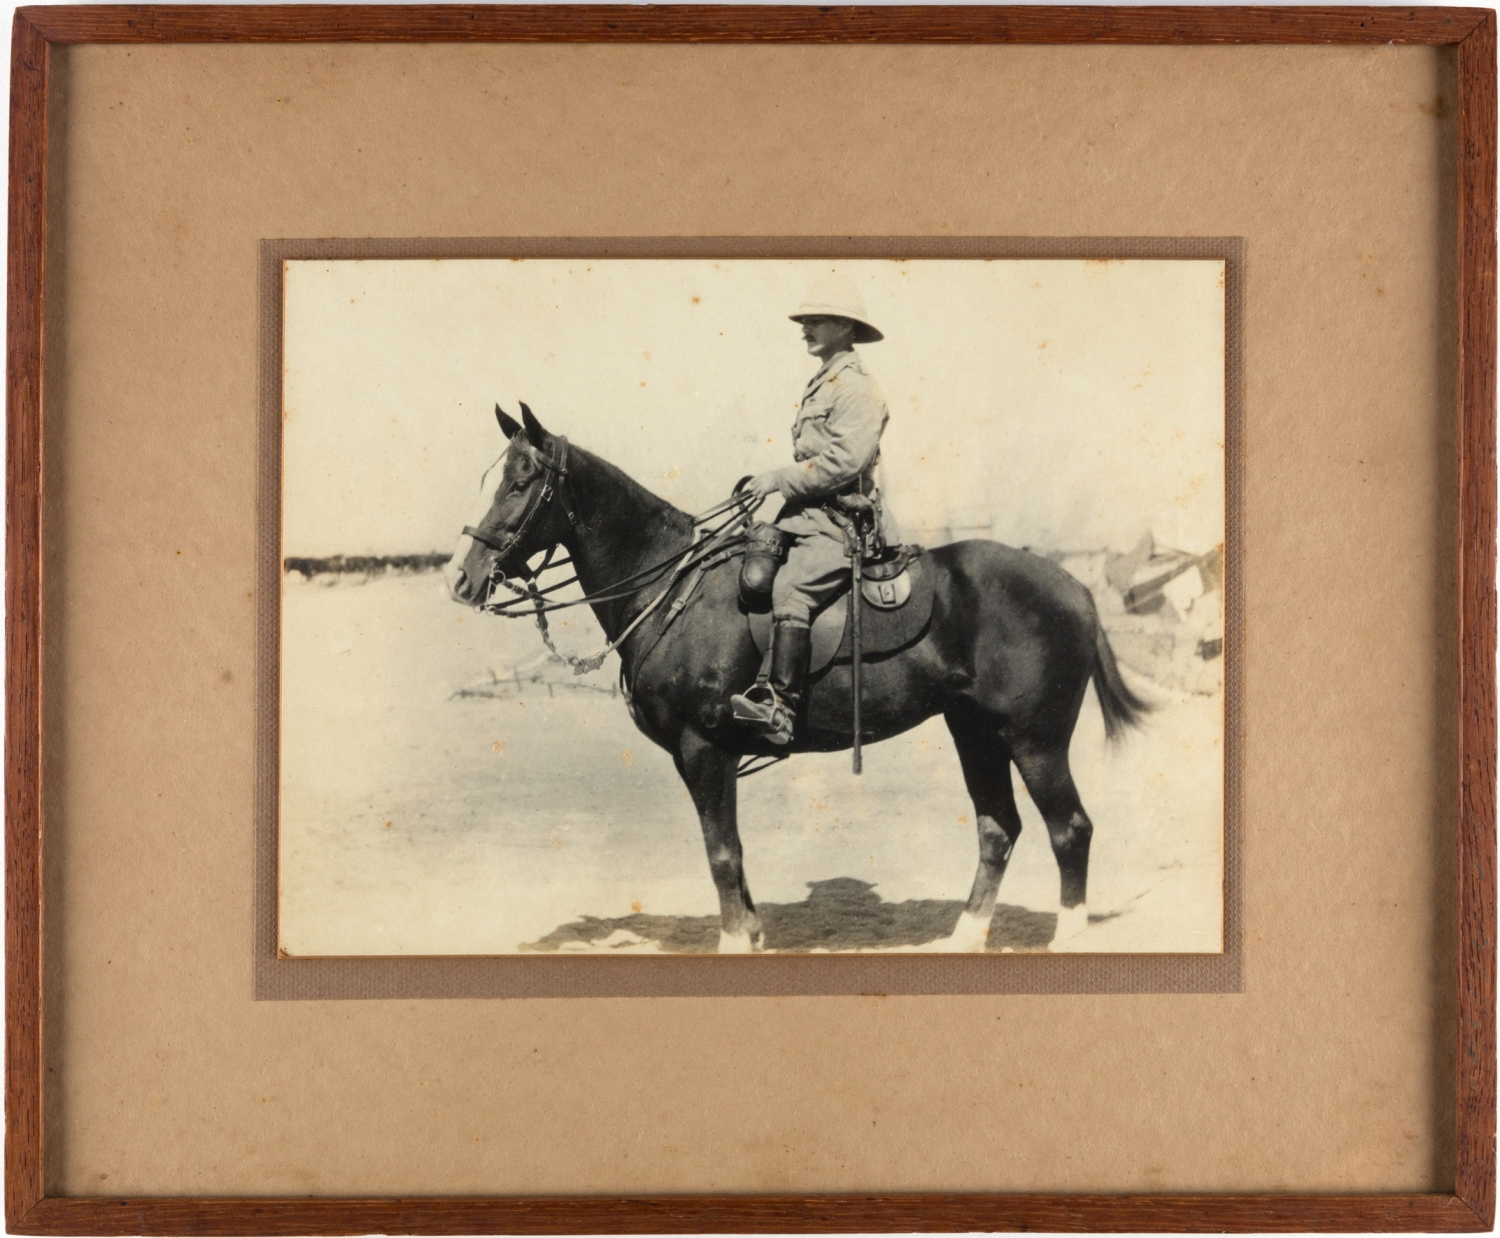 Frame with black and white photo of man on horseback.